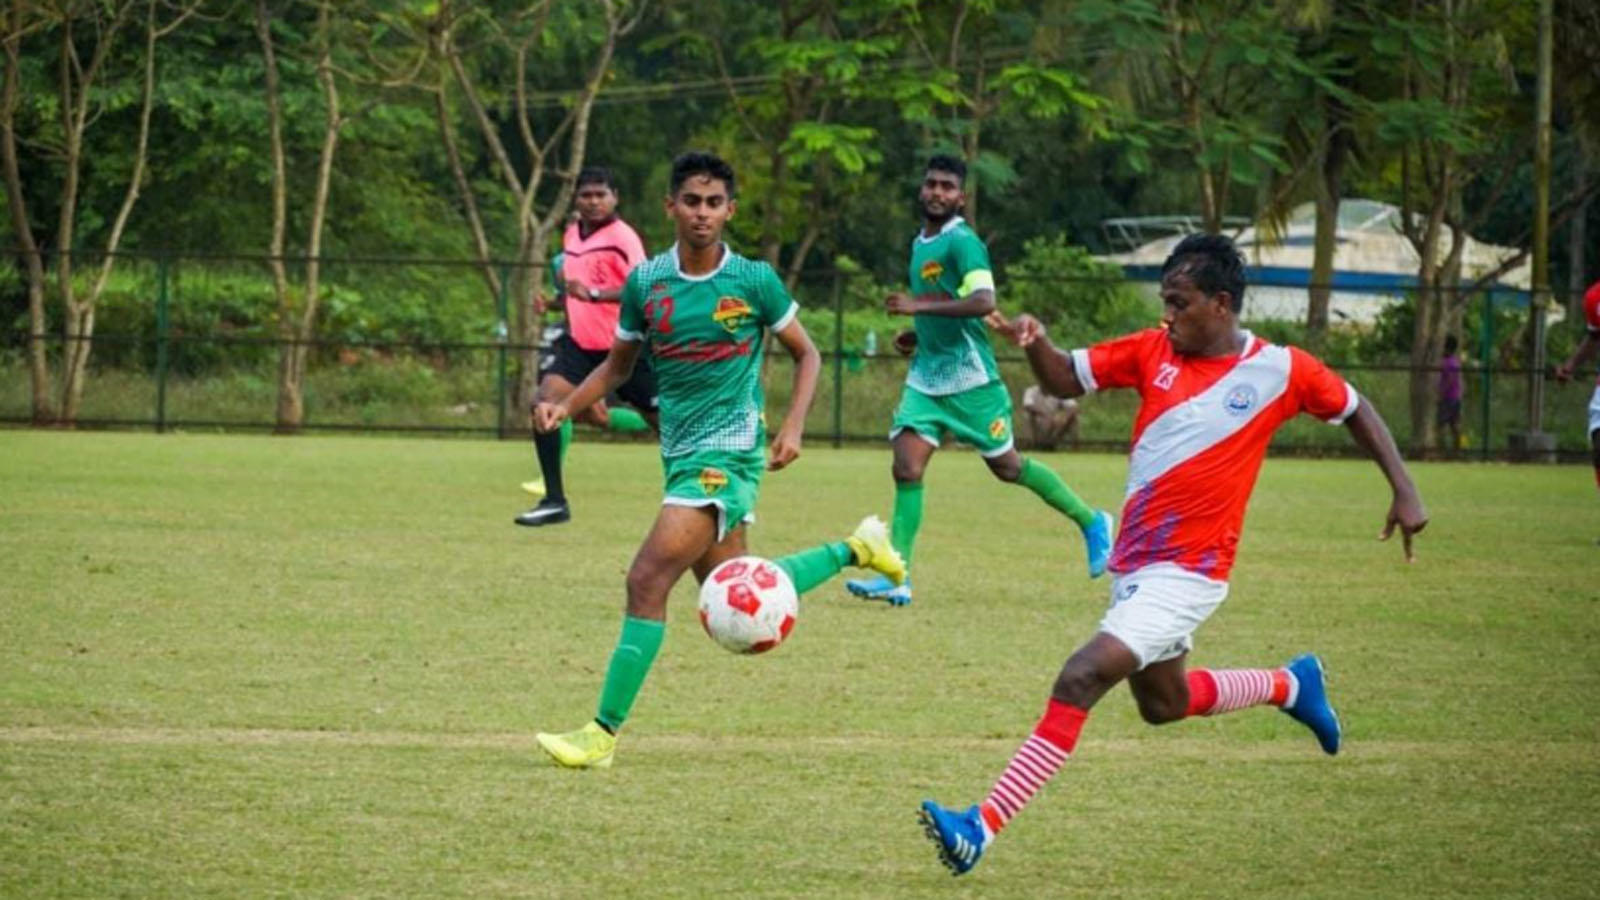 match-fixing-in-goan-football-beautiful-game-shows-its-ugly-side